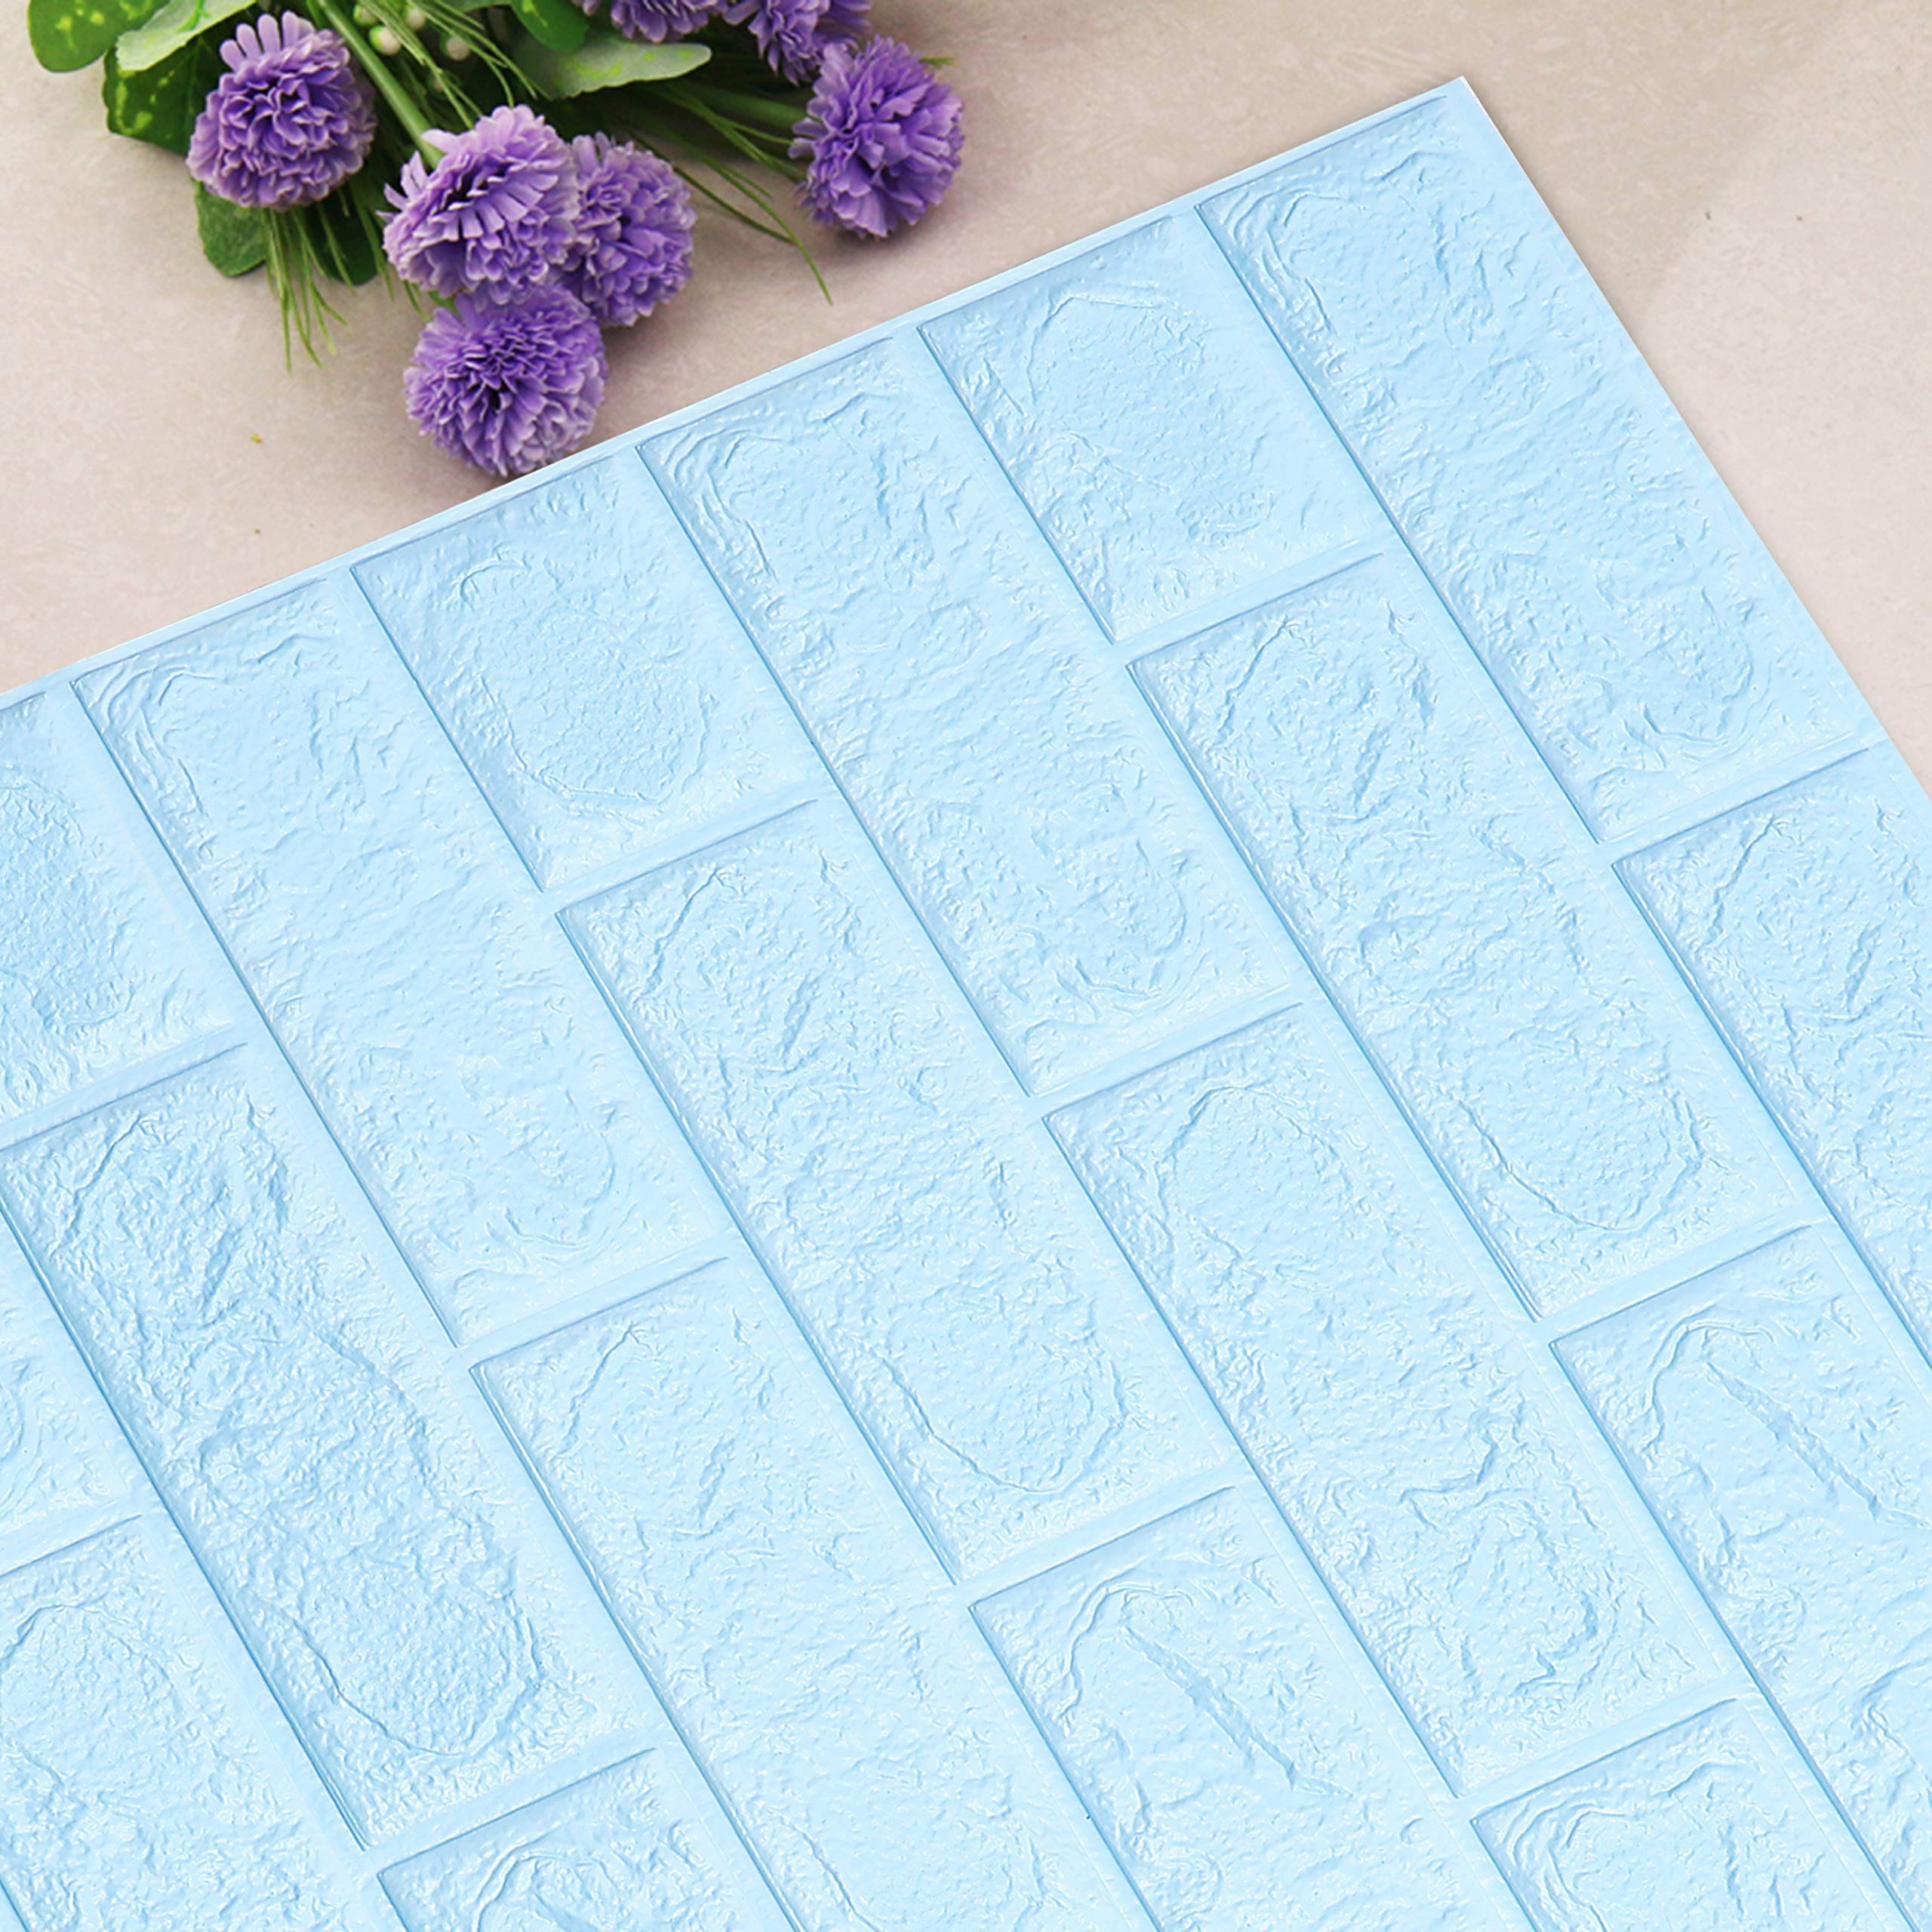 UNICOO - 3D Wall Panels Peel and Stick Self-Adhesive Real Bricks Effect Wall Tiles for Kids Room Bathroom Living Room TV Walls Sofa Background Wall Decoration. 116sq ft 20 Packs (Light Blue)